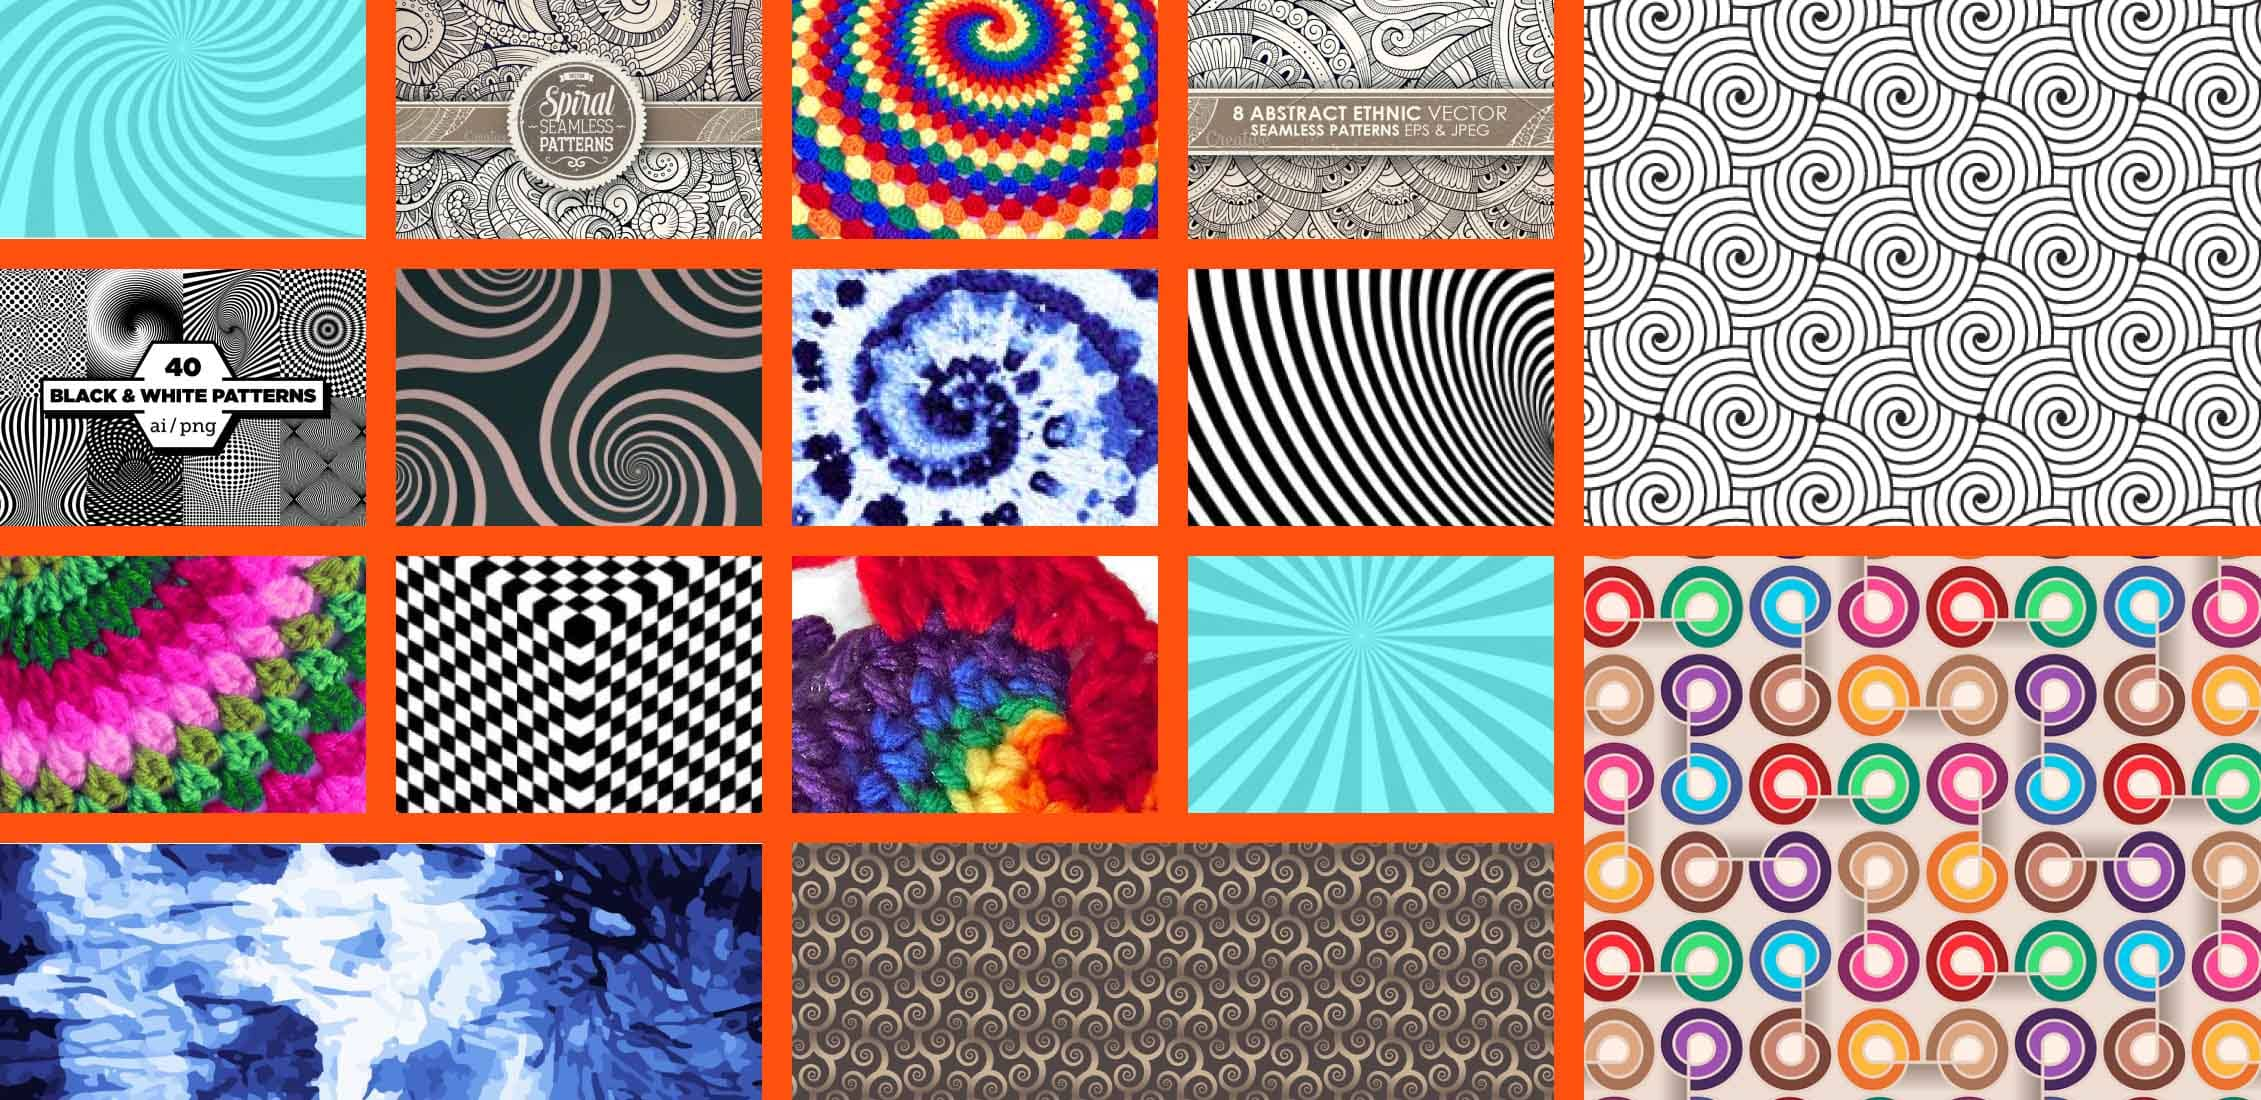 Spiral Pattern Images Example.